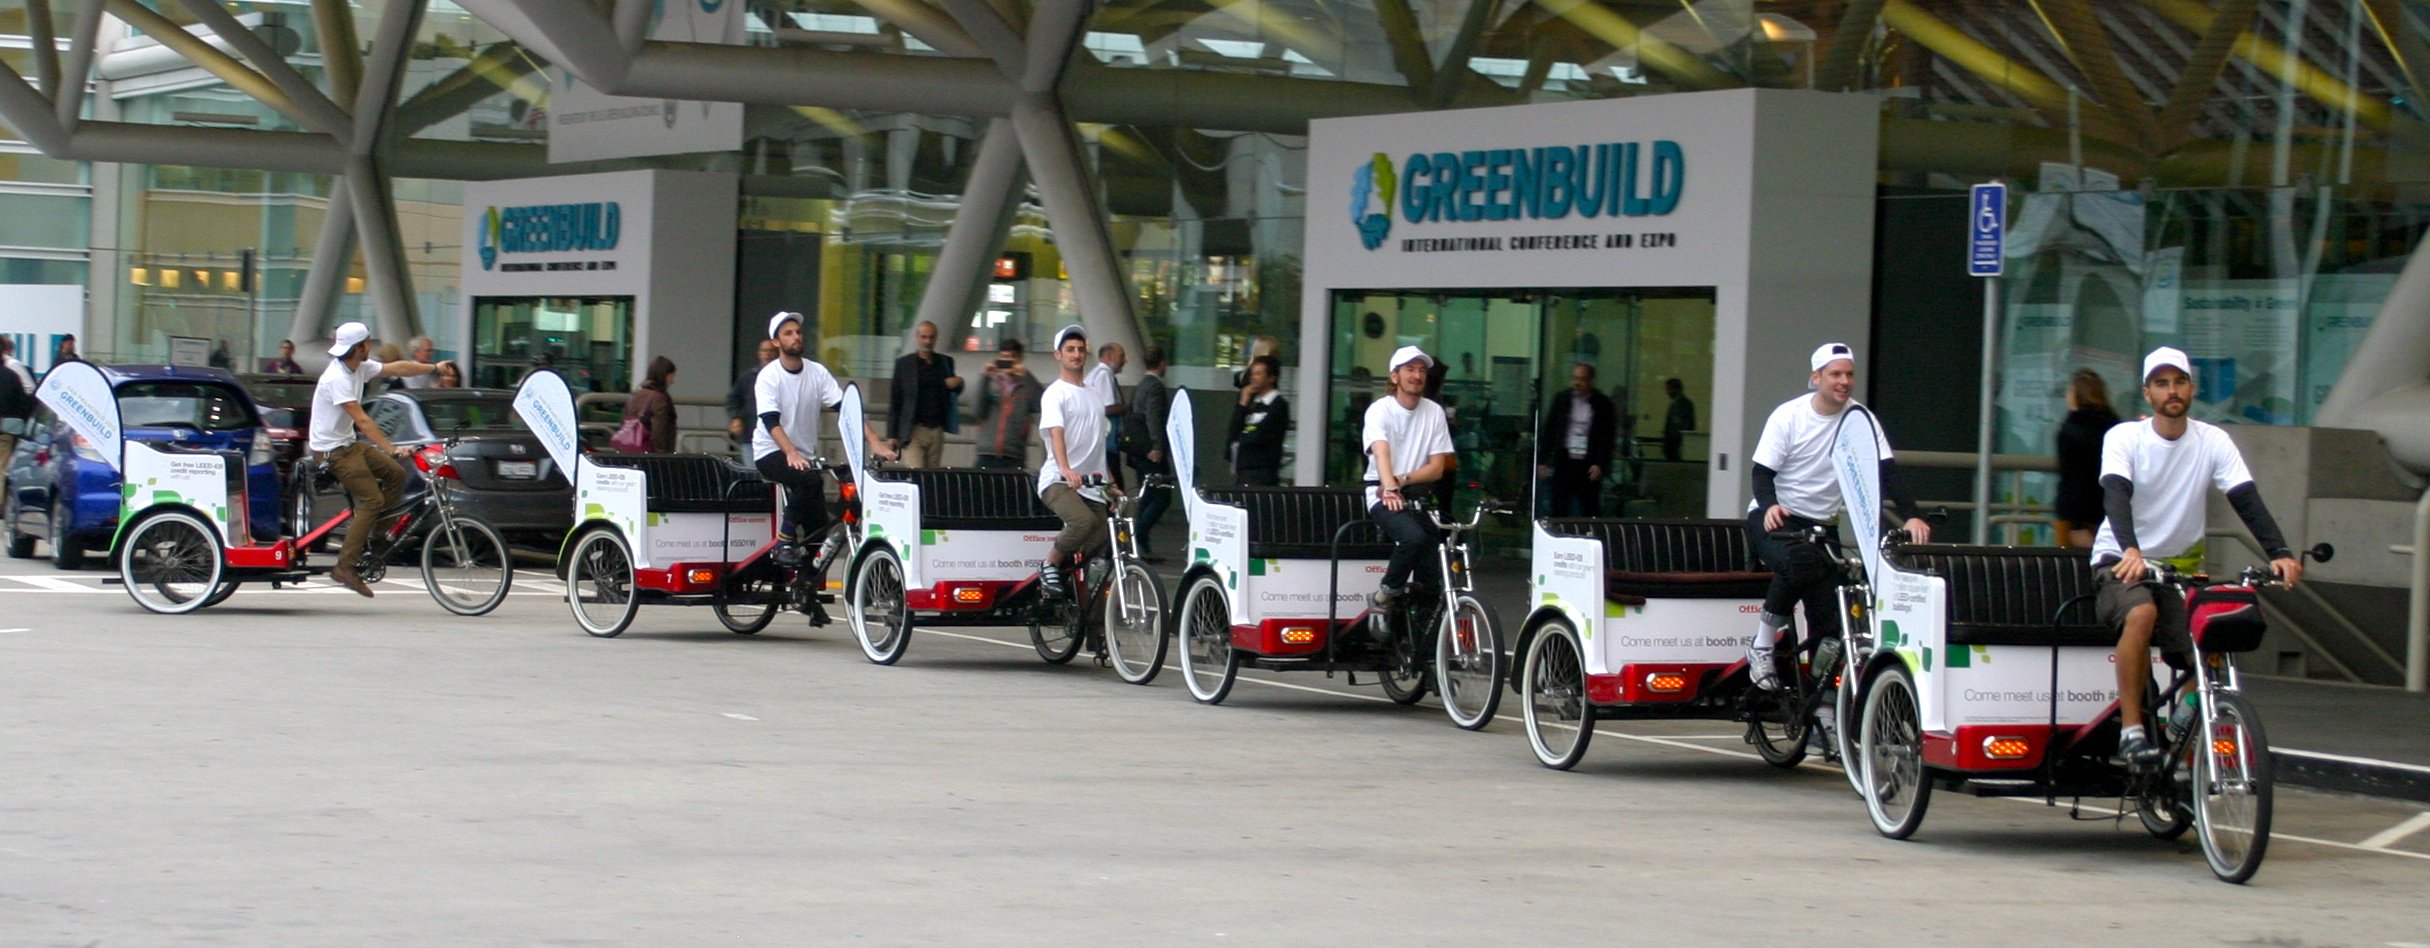 See the Fully Branded Pedicabs of US Greenbuild